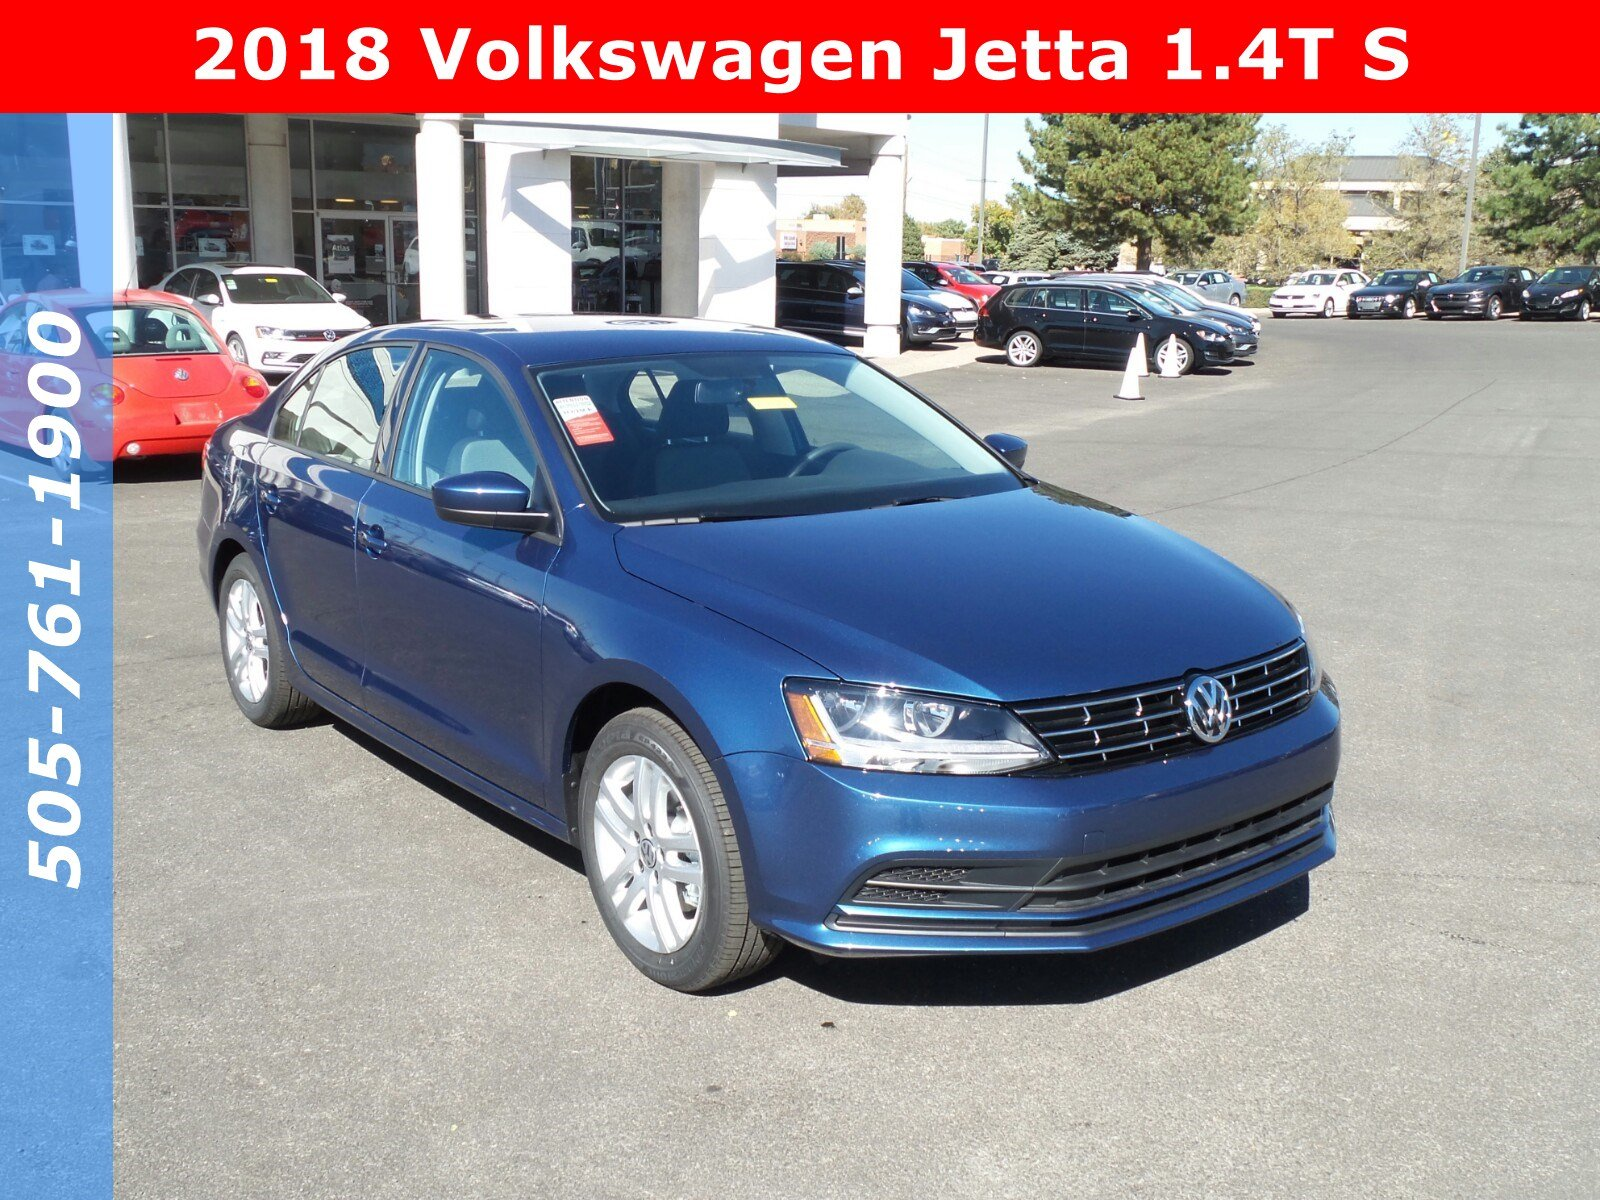 albuquerque nm golf new specials vw volkswagen image r exterior lease original and finance offers deals main